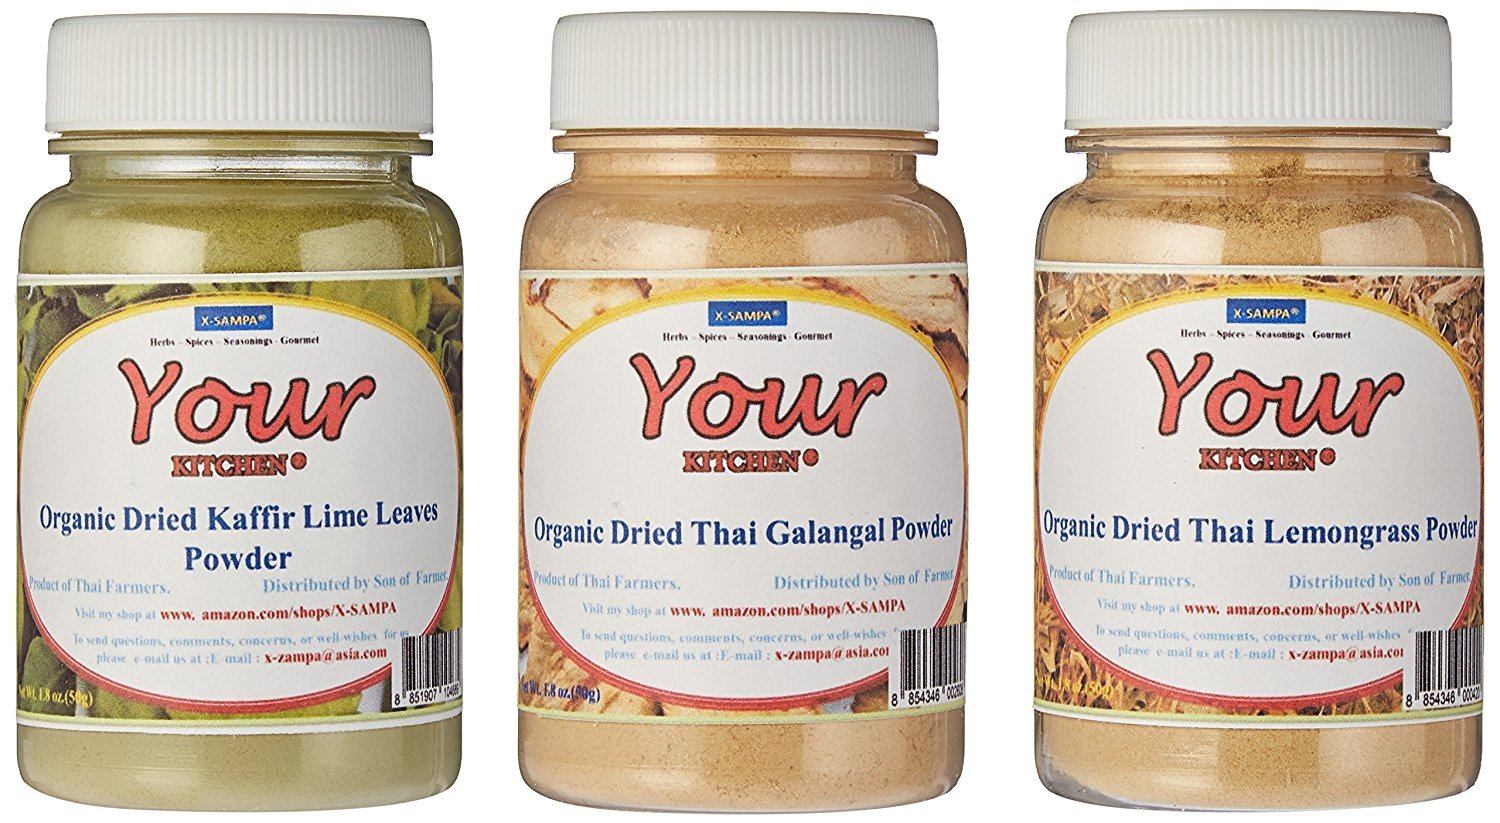 Yours Kitchen Ultimate Spices Seasonings Gift Set With 3 Spices.